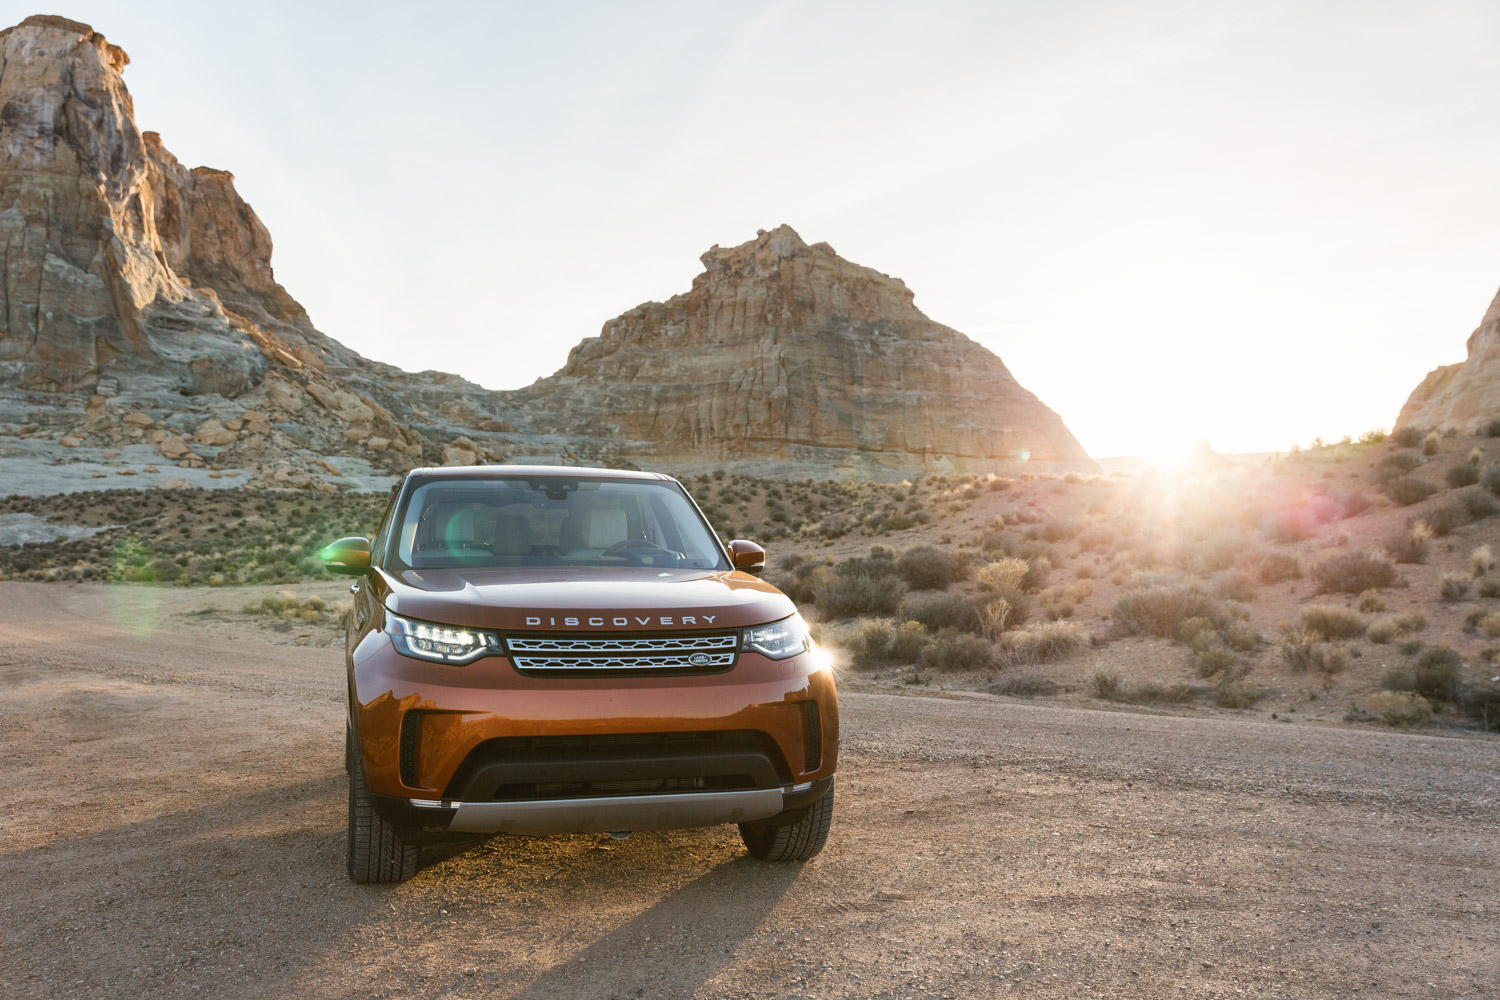 2018 Land Rover Discovery Campaign